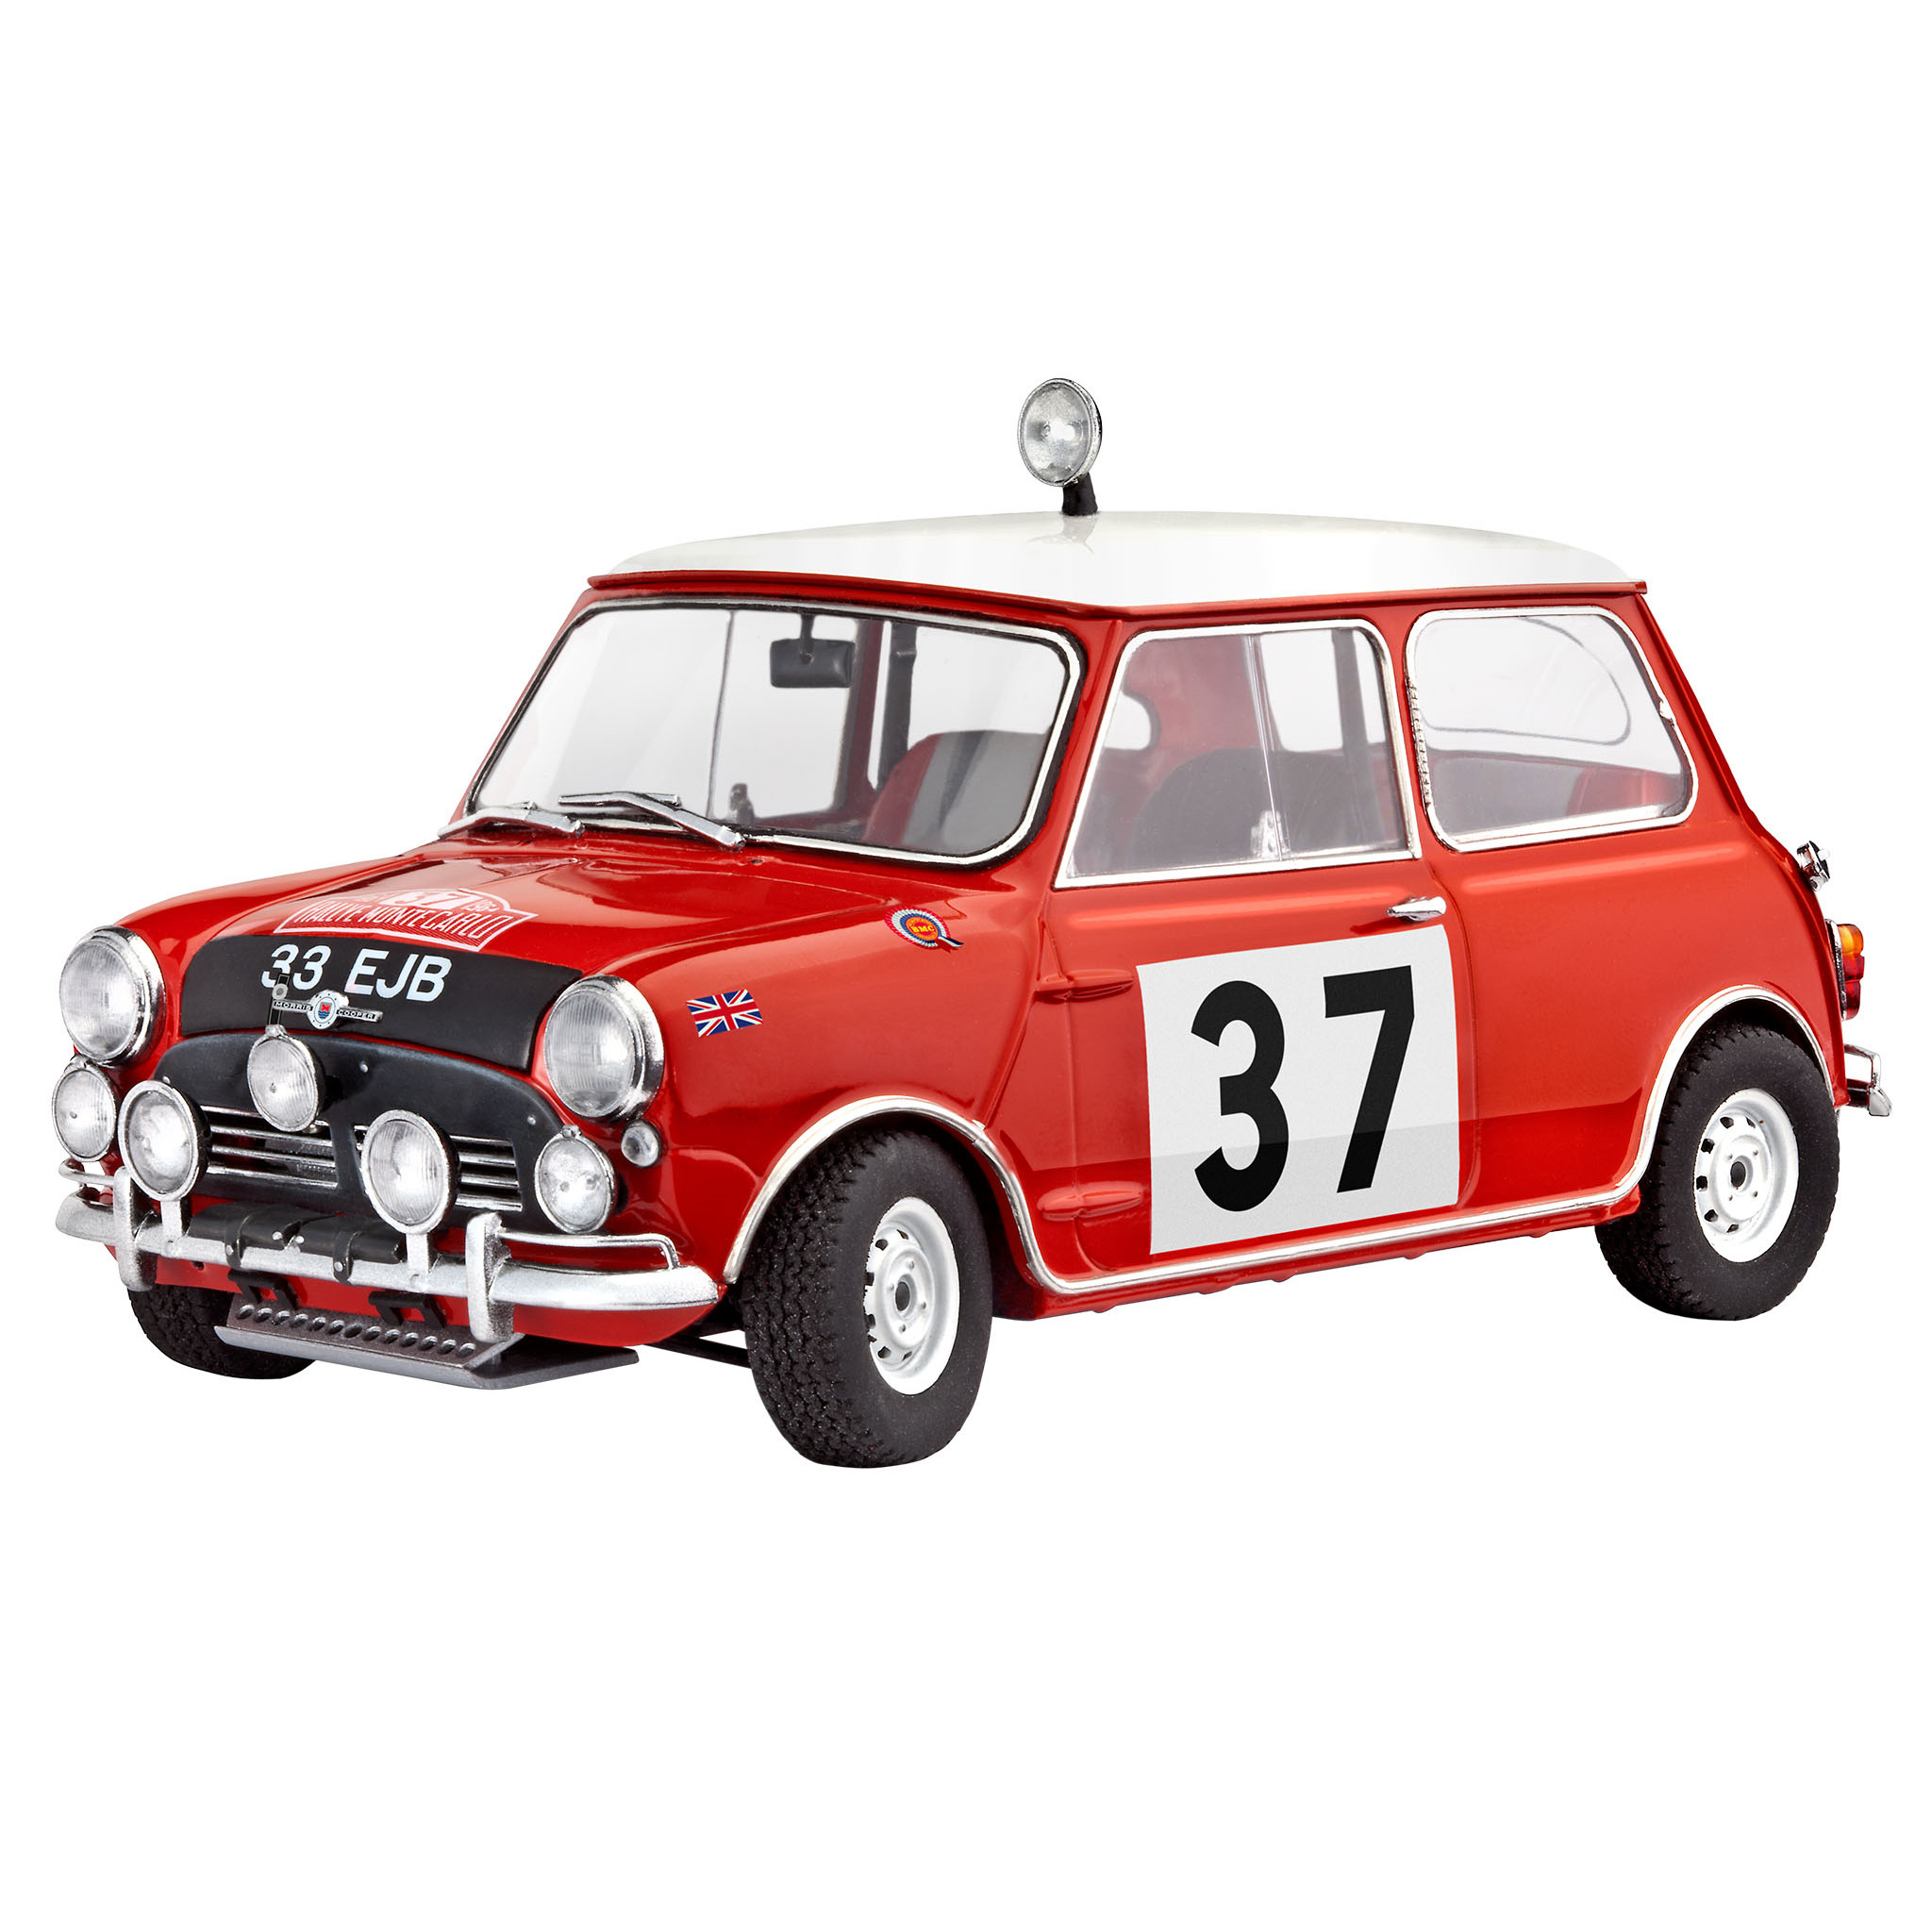 revell 67064 model set mini cooper rallye monte carlo64 timmi spielwaren onlineshop. Black Bedroom Furniture Sets. Home Design Ideas